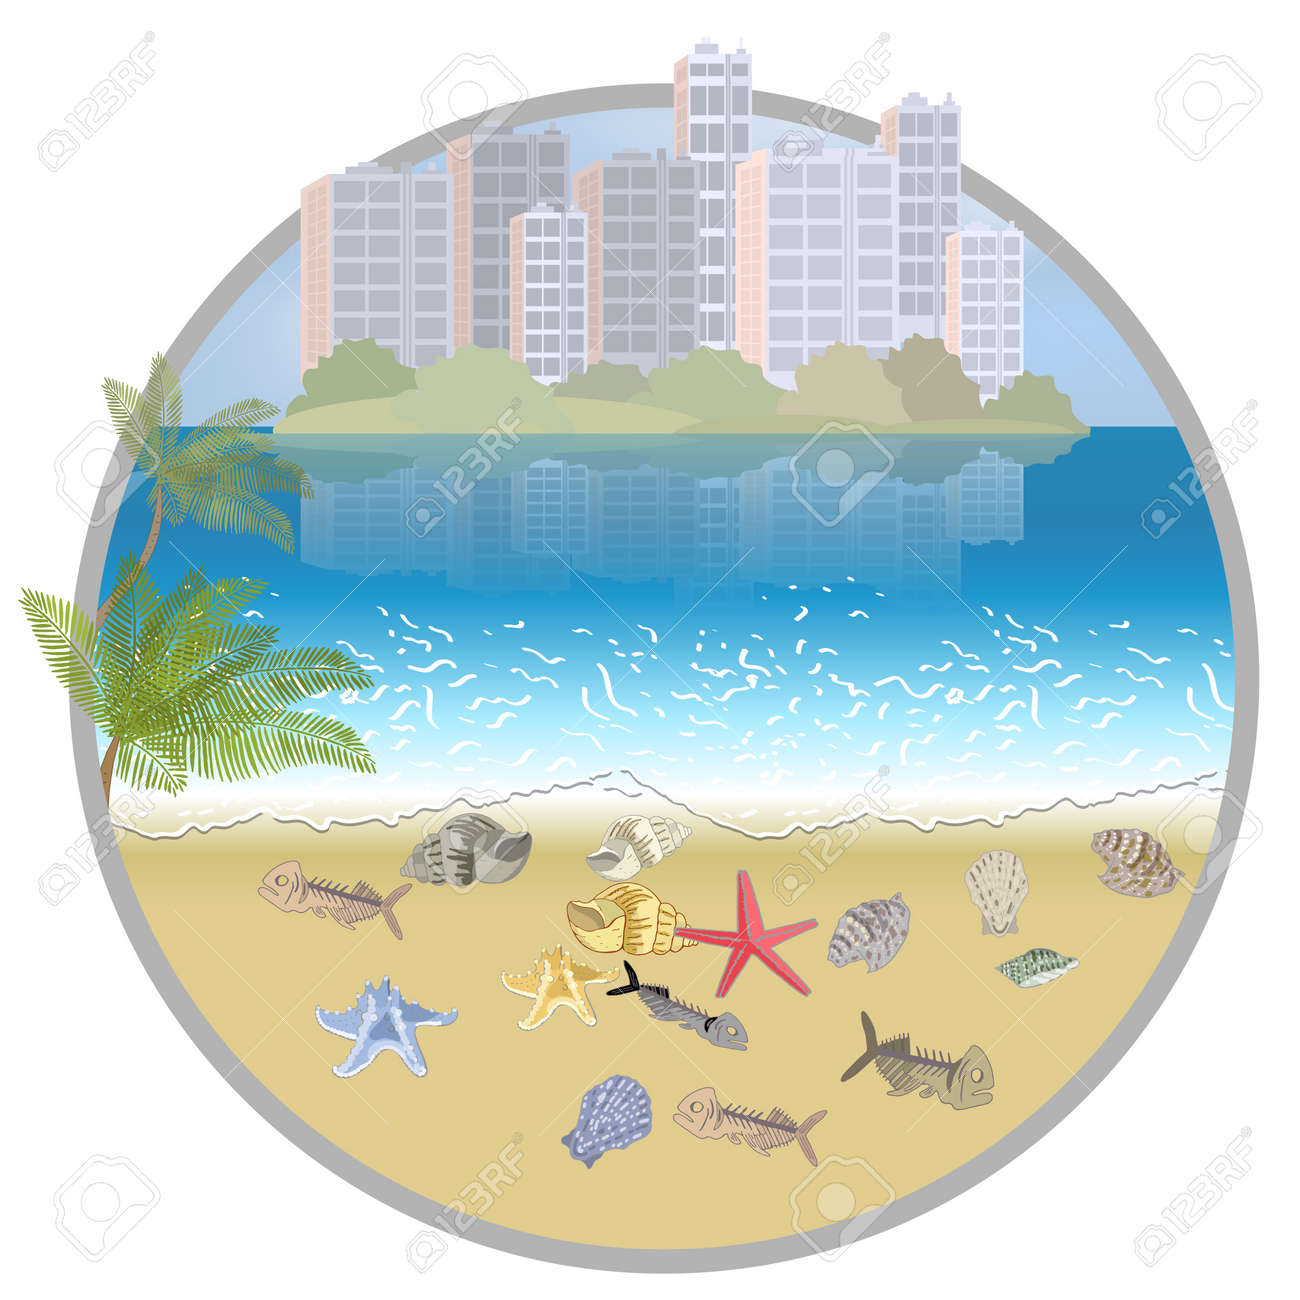 Environmental disaster of plastic debris in the city. Garbage on the coast in the ocean and in the sea. - 160860745